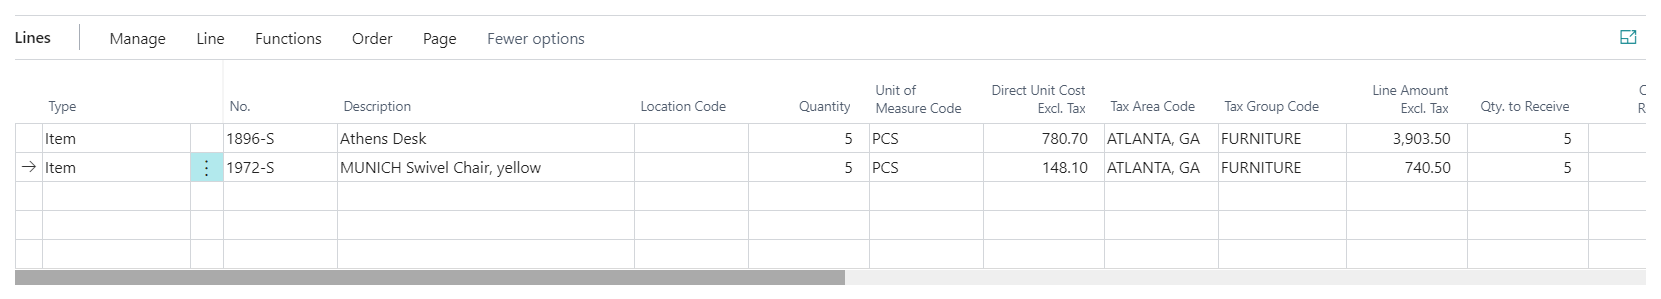 Dynamics 365 Business Central - Drop Ship Purchase Order